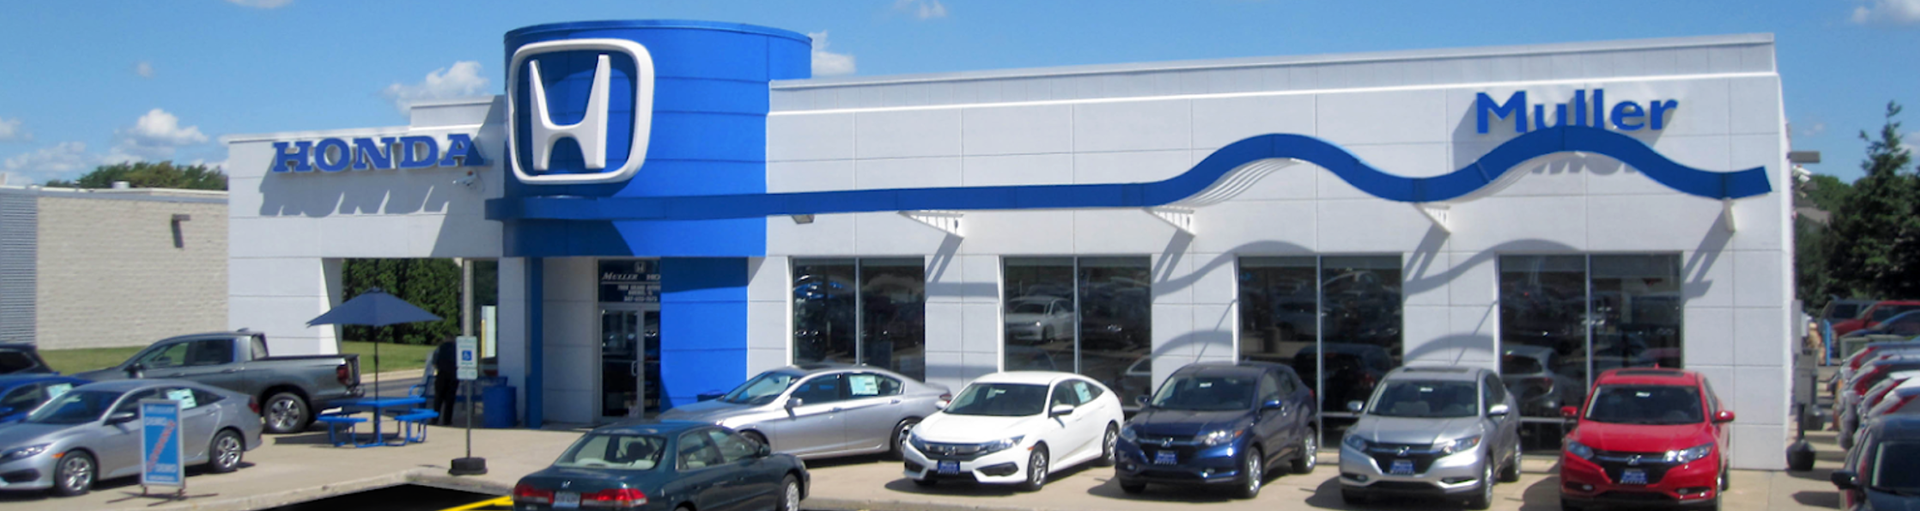 Muller Honda of Gurnee Dealership